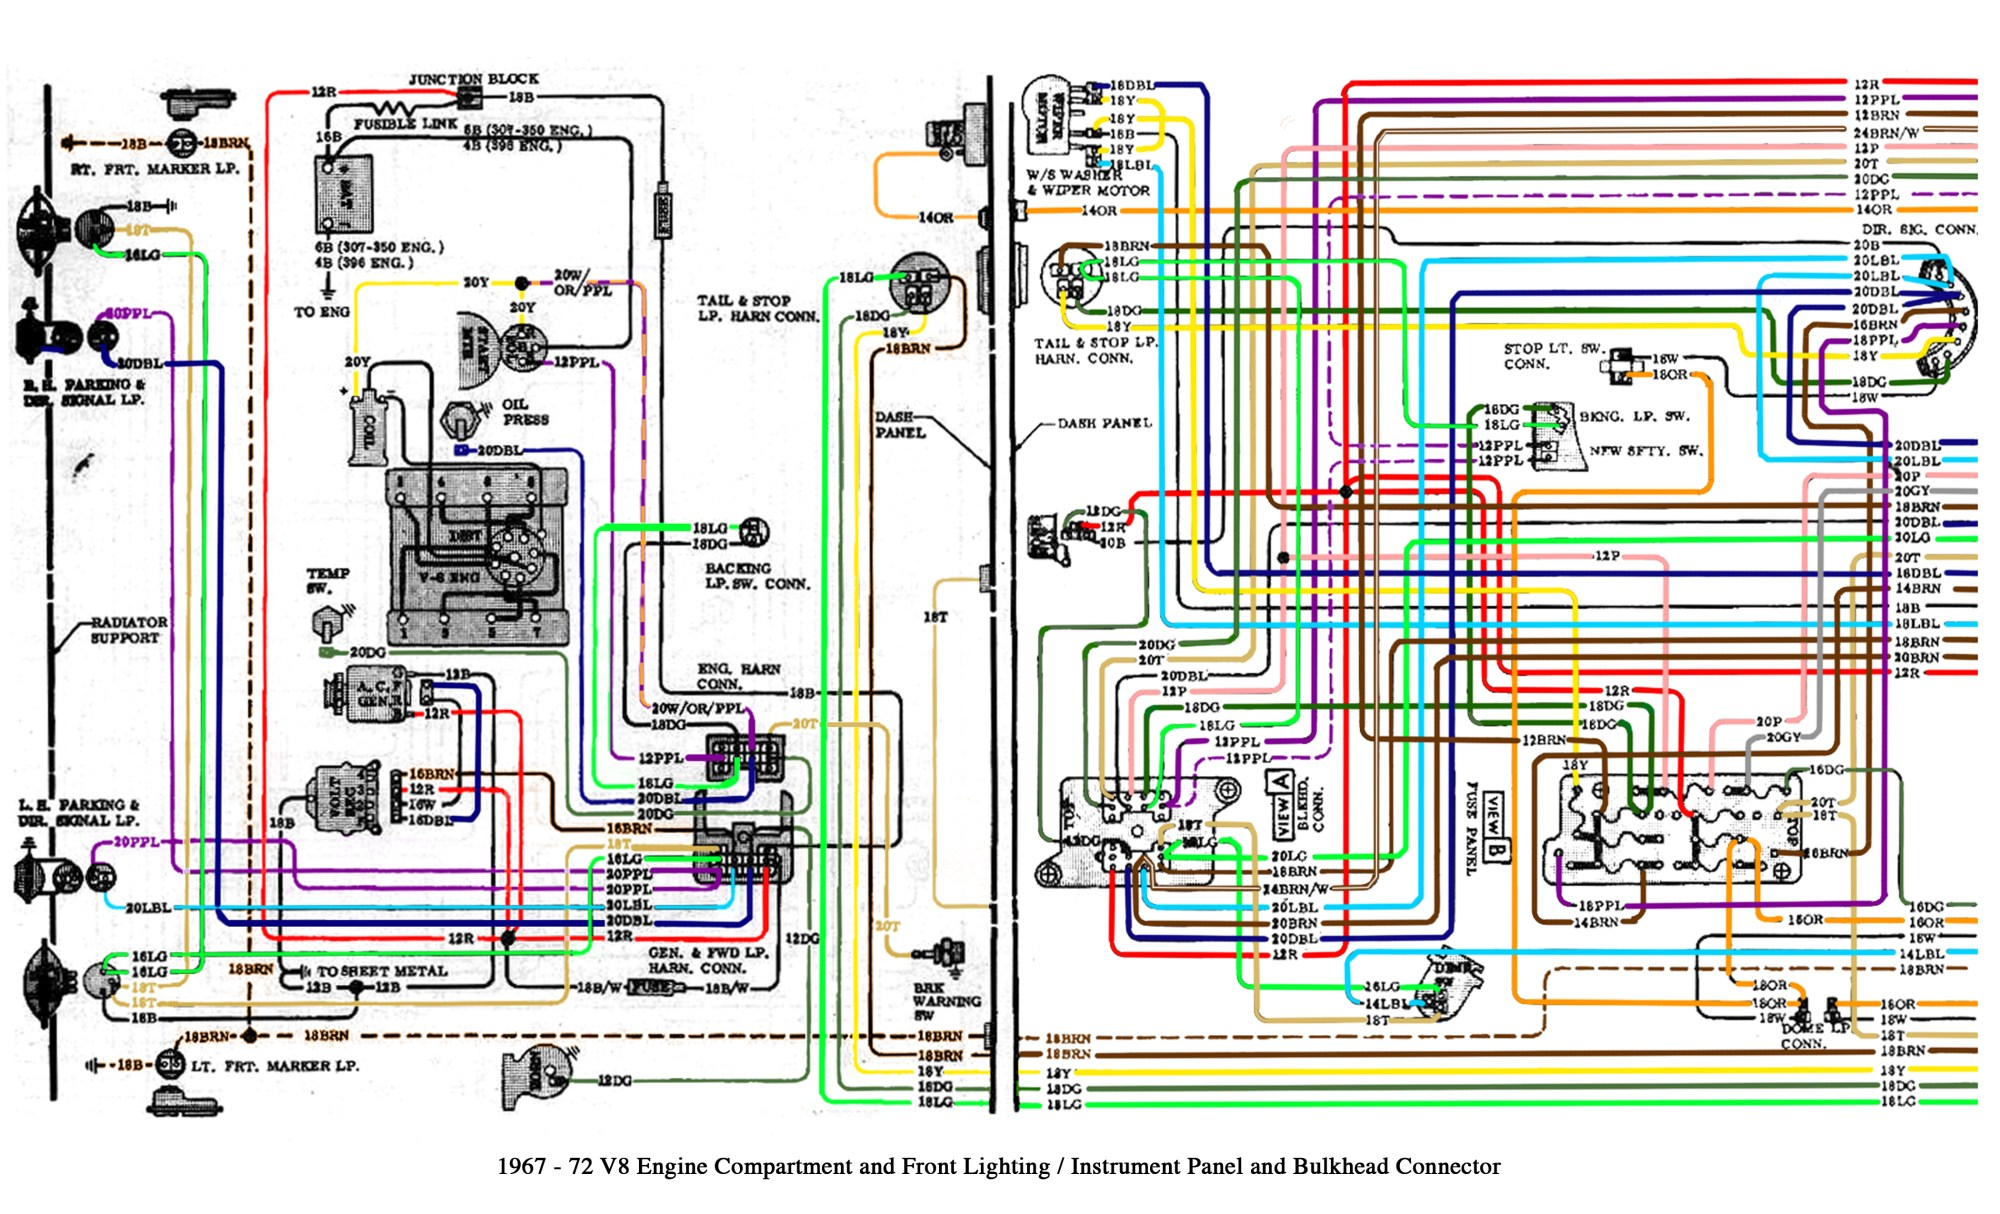 hight resolution of 1988 s10 wiring diagram wiring diagram gol 1988 chevy s10 wiring diagram 1988 s10 wiring diagram